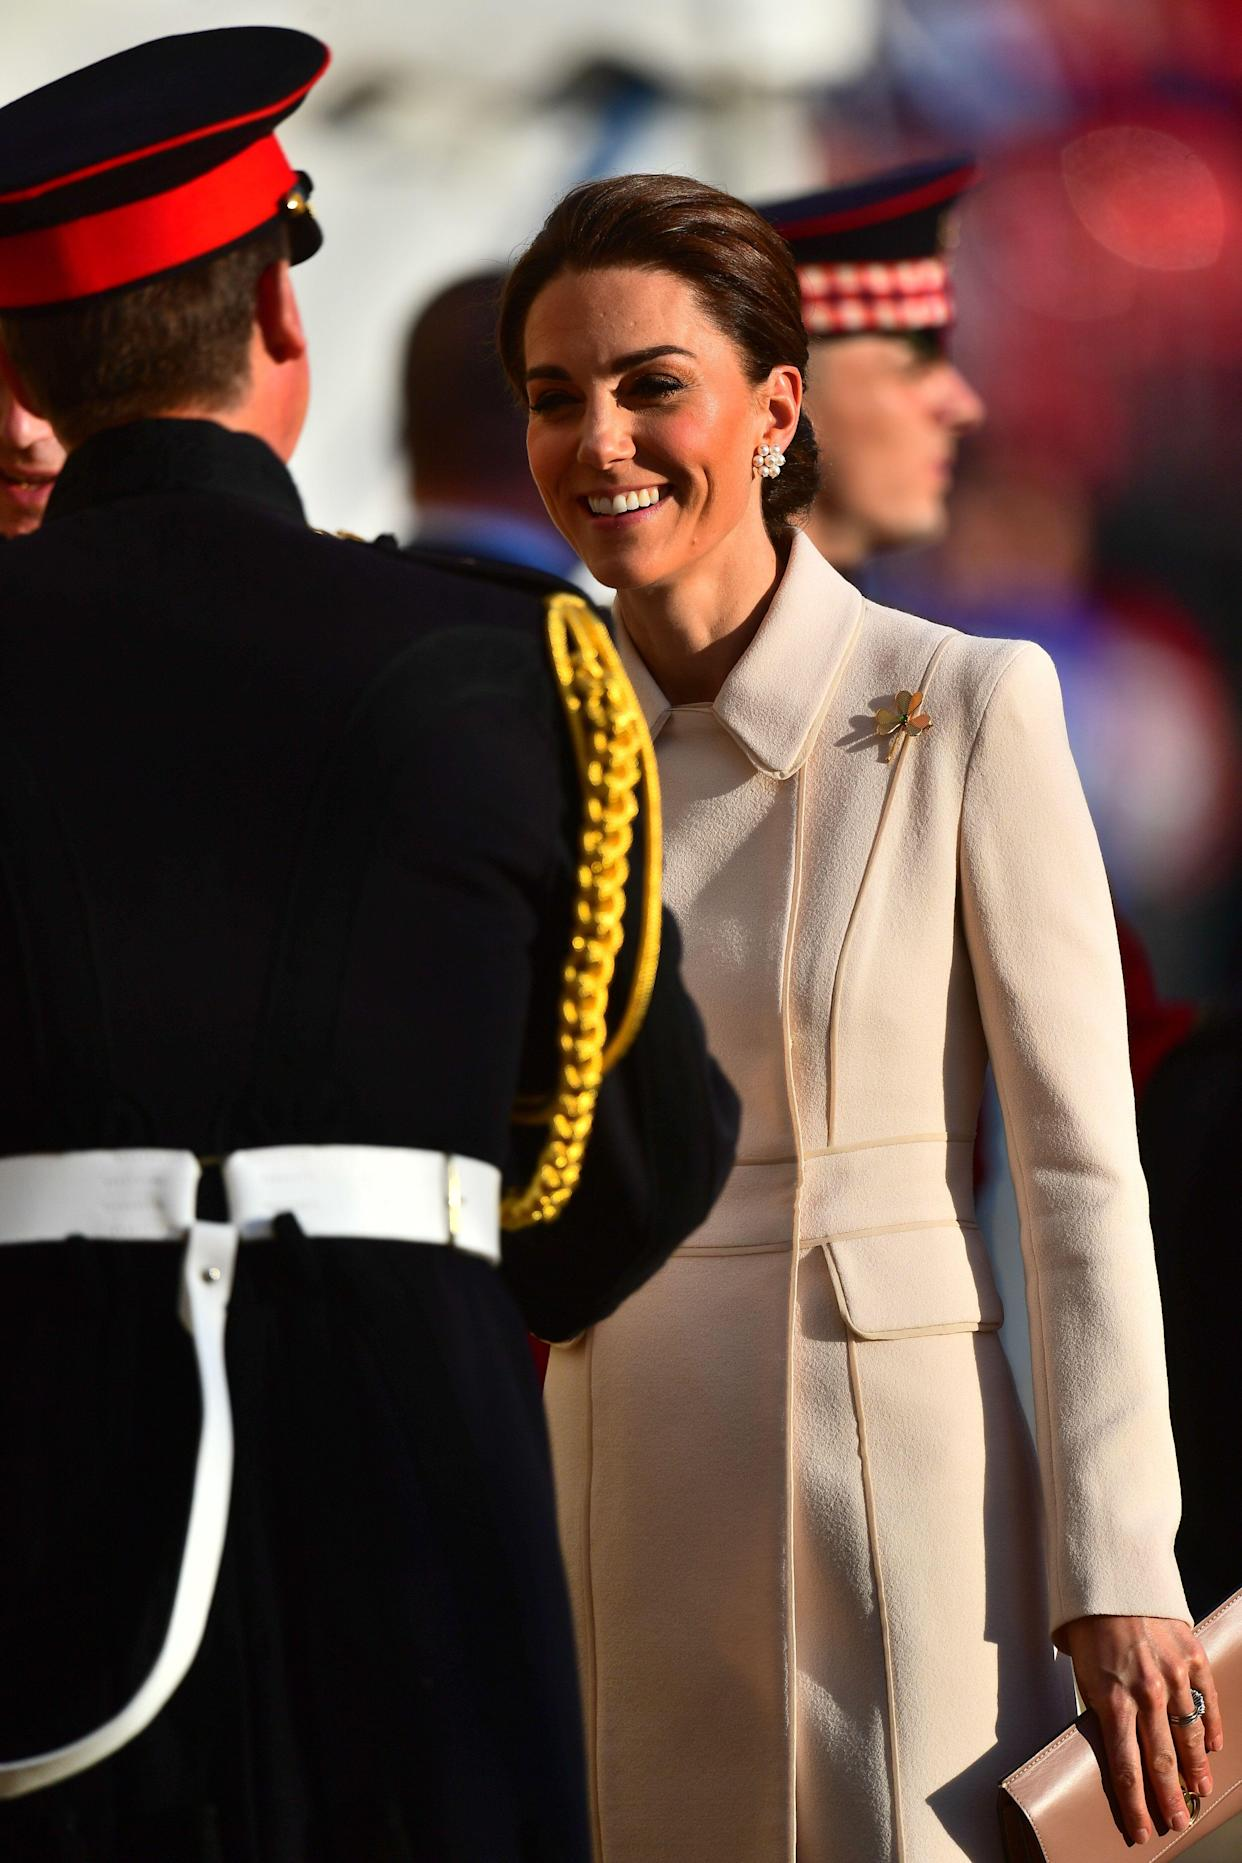 The Duchess of Cambridge arrives to watch members of the Massed Bands of the Household Division during the annual Beating Retreat ceremony, which features over 750 soldiers, on Horse Guards Parade, London.